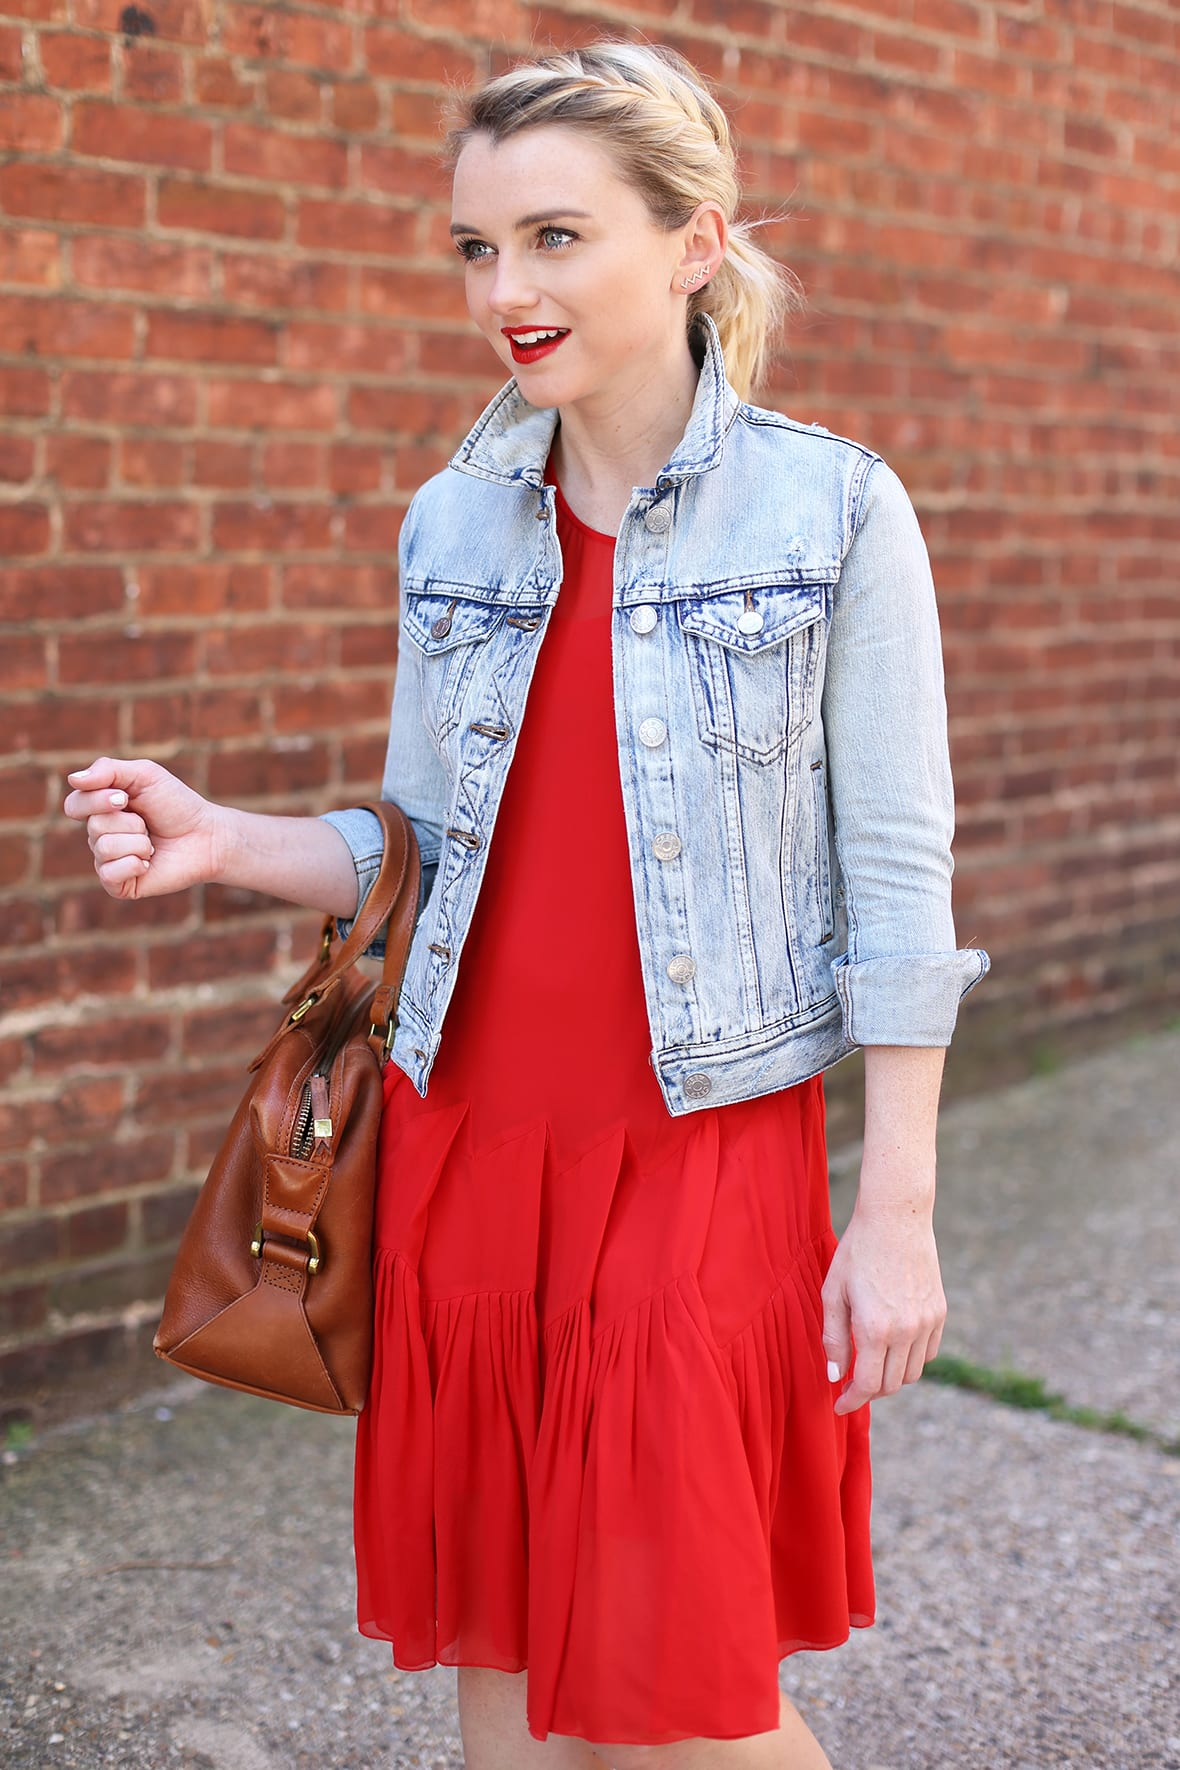 Red Dress And Denim Jacket For Summer - Poor Little It Girl